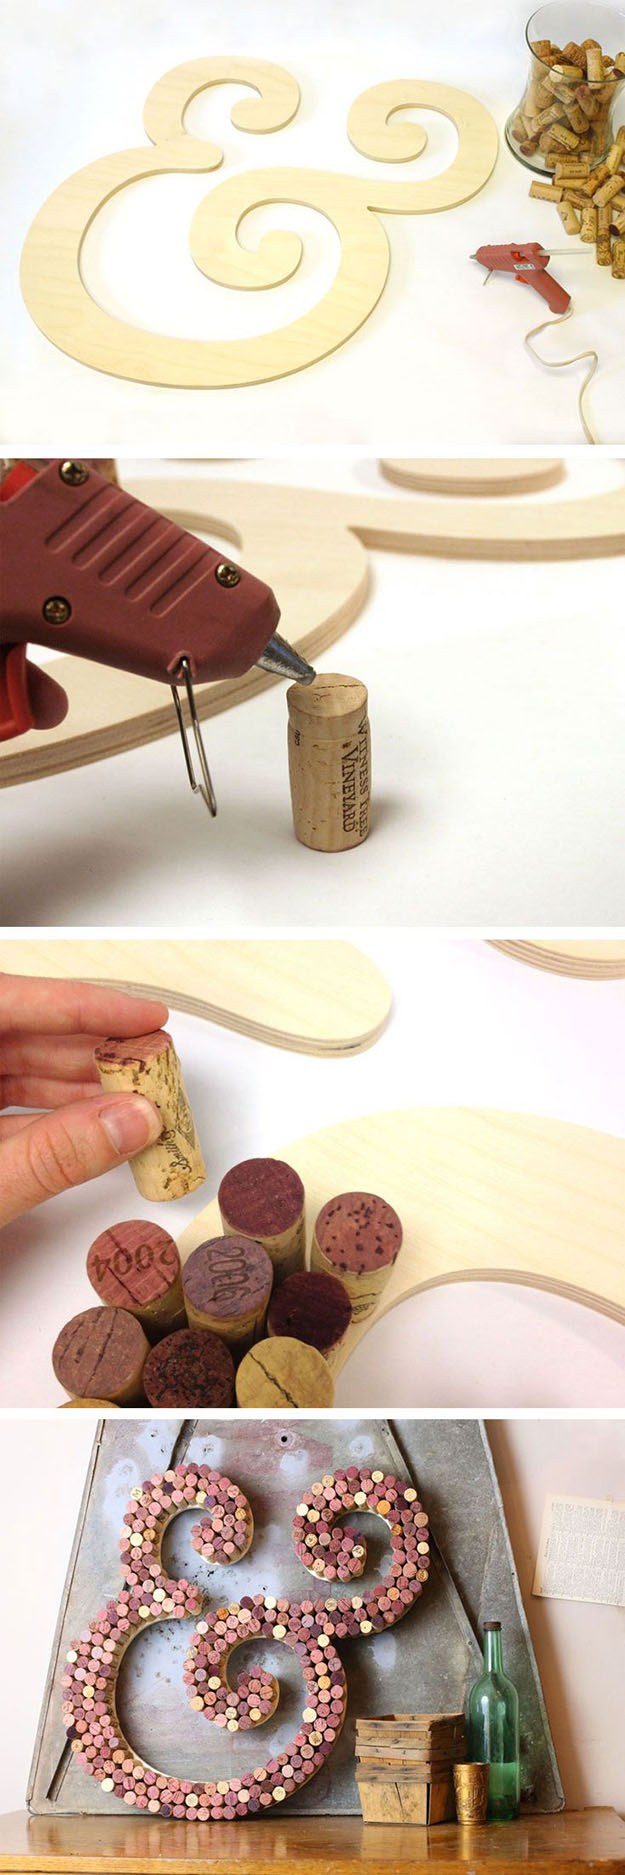 15 Cool DIY Wine Cork Ideas You'll Want To Craft Right Away